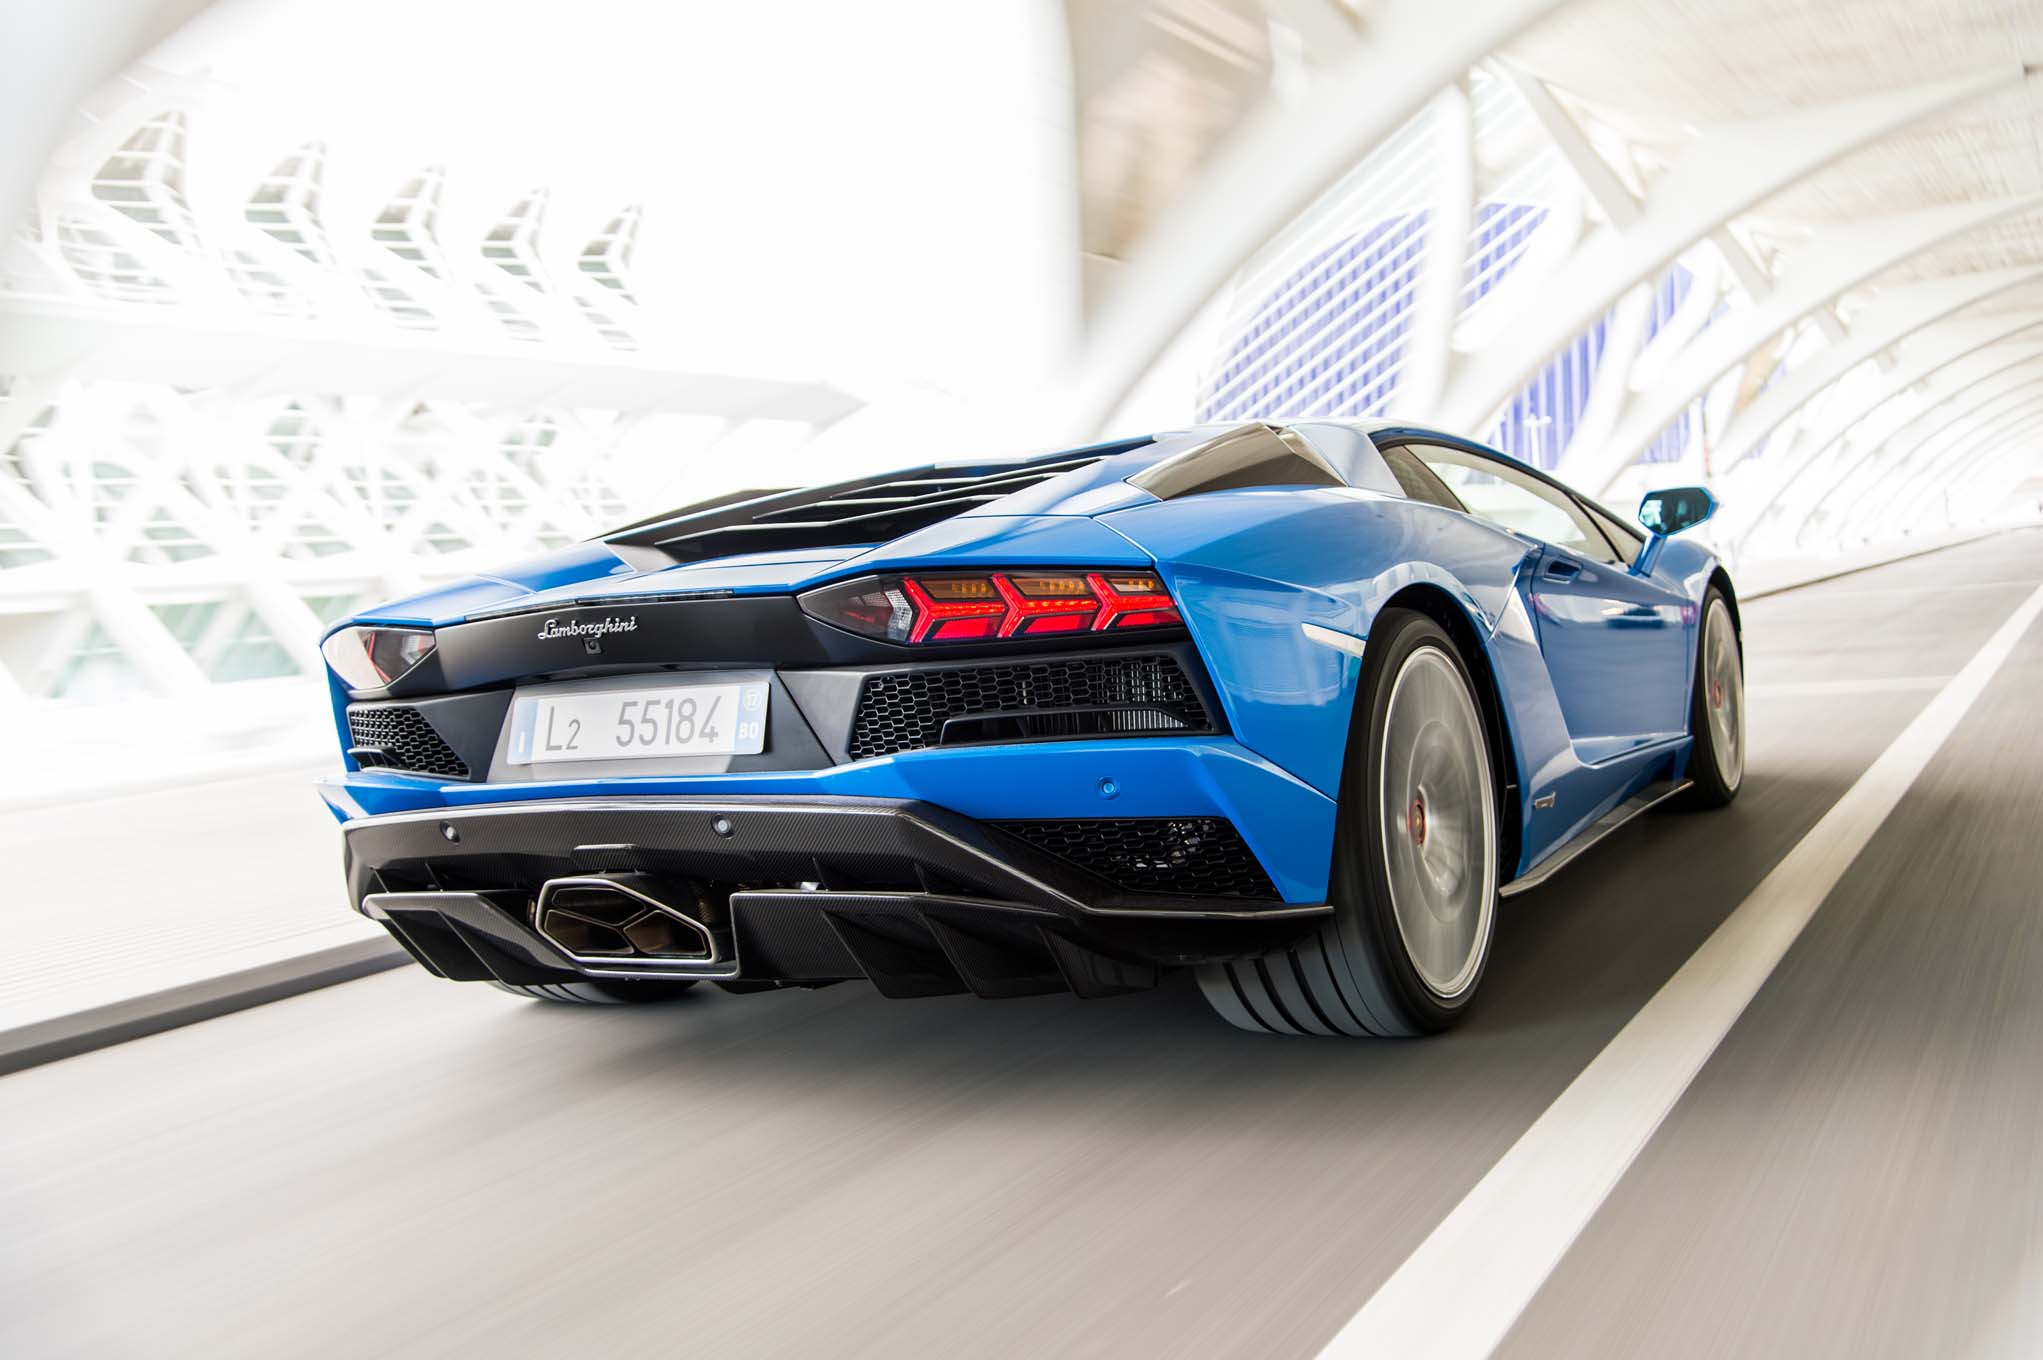 2018 Lamborghini Aventador S Rear Three Quarter In Motion 12 Motor